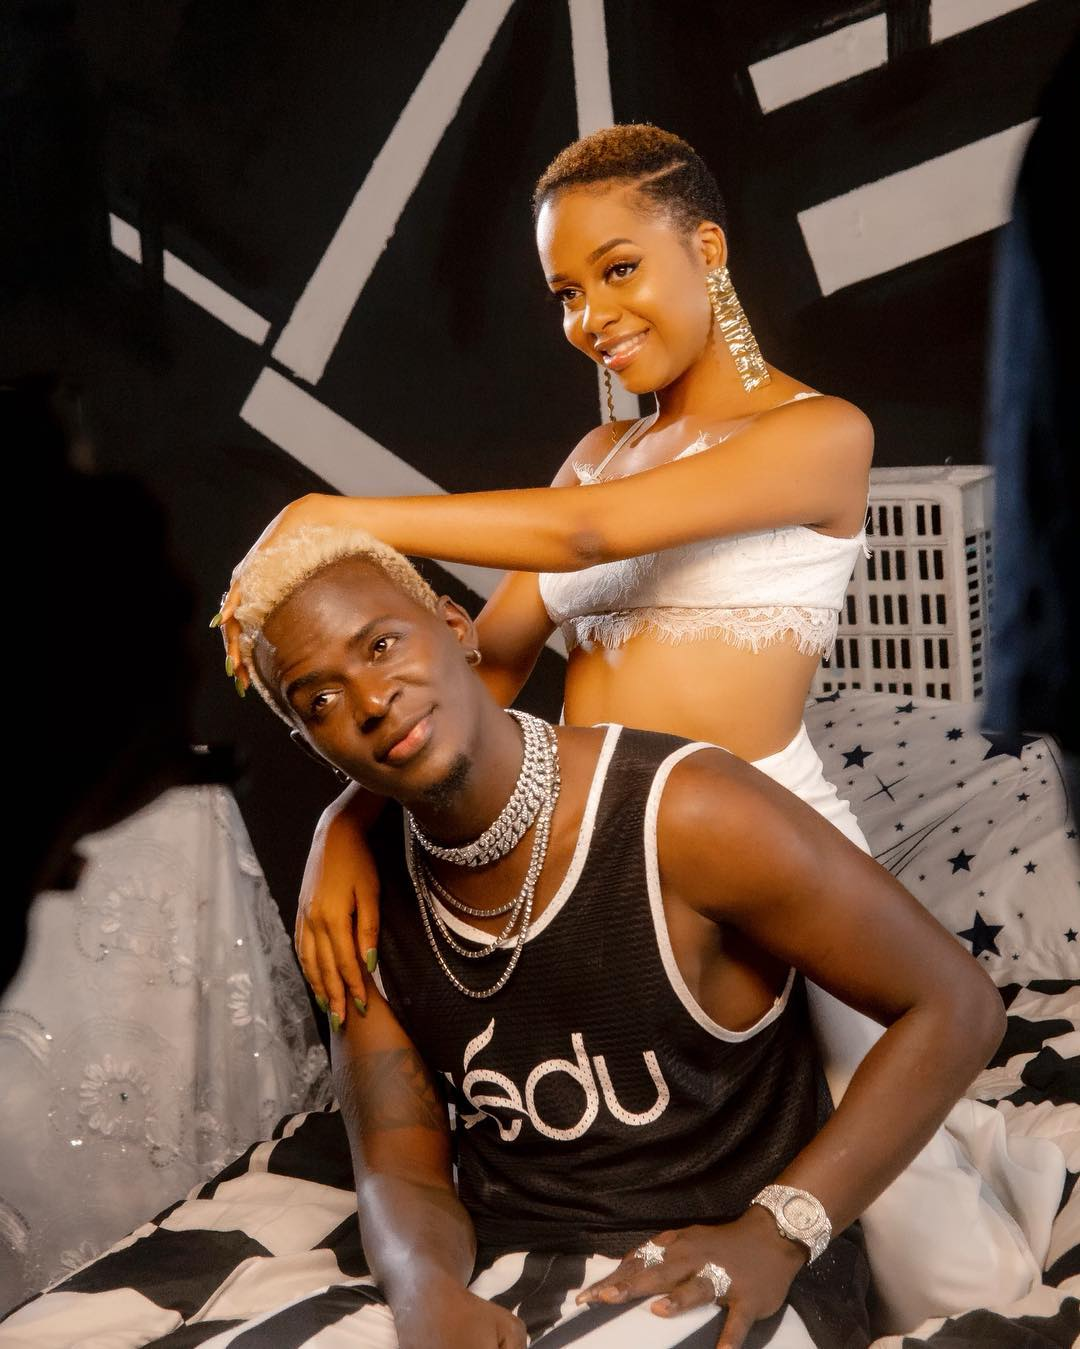 Nandy with Willy Paul - Exclusive: Wanadate? Willy Paul speaks about relationship with Nandy